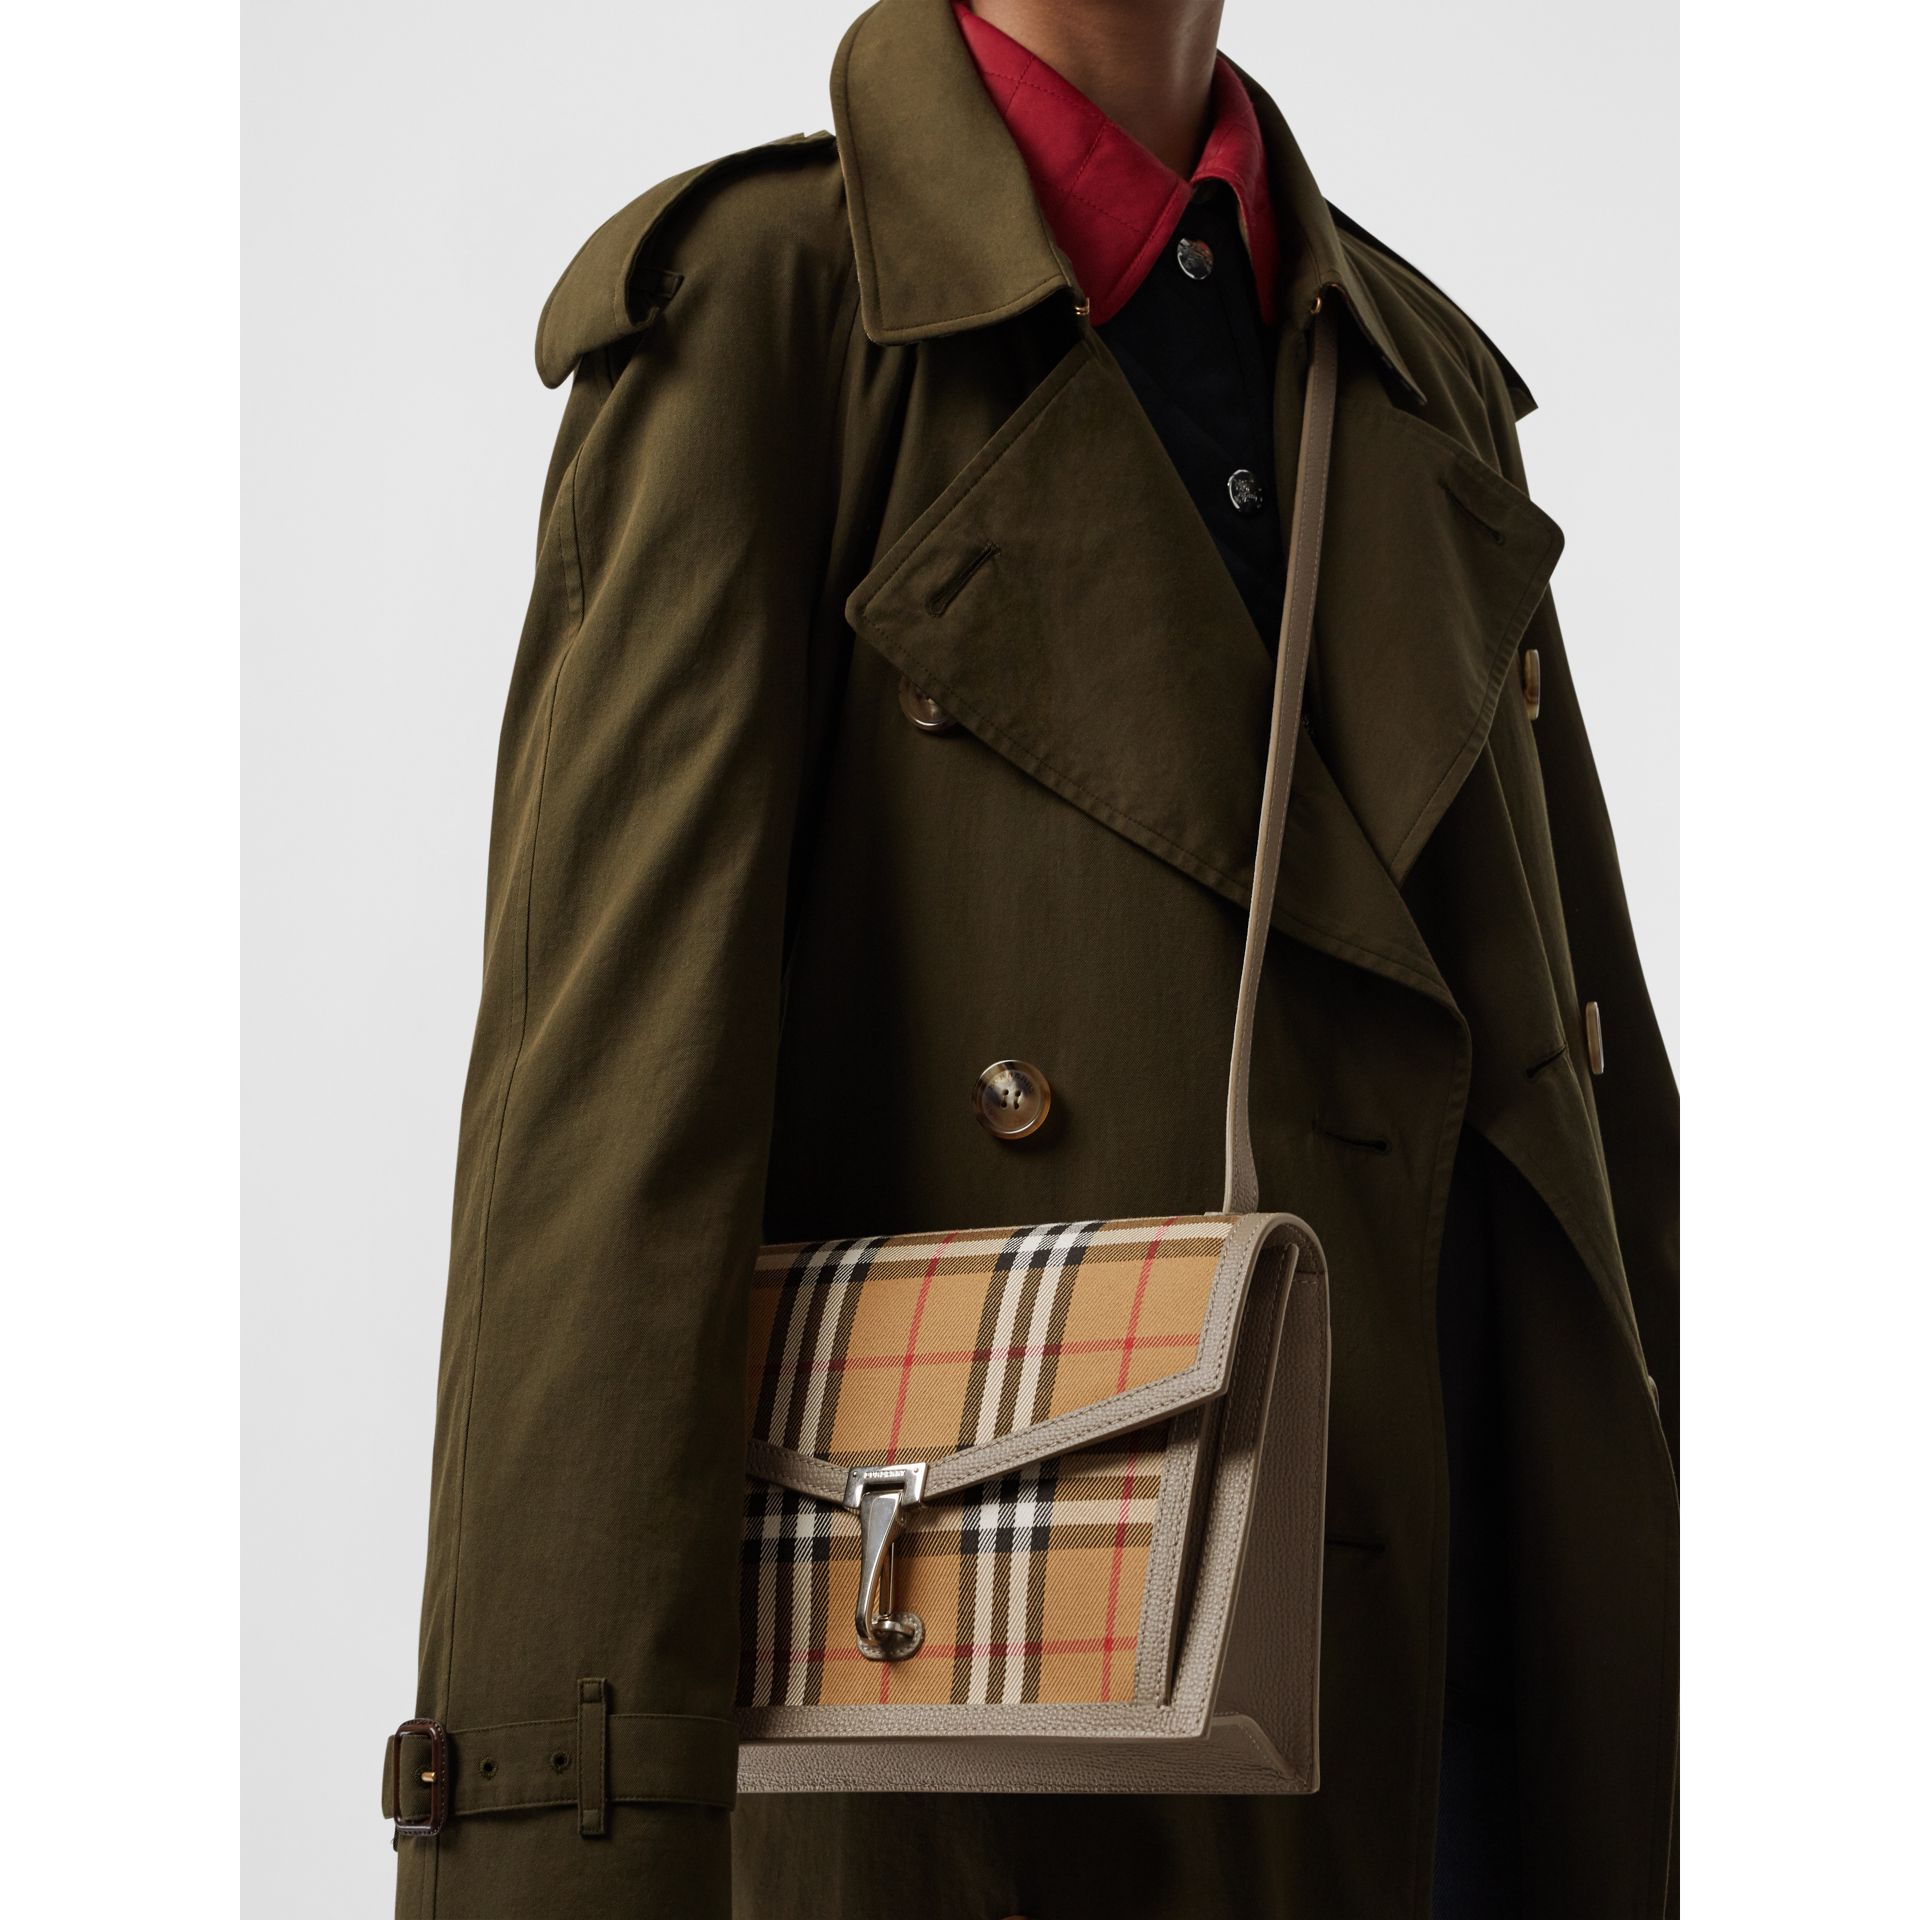 Small Vintage Check and Leather Crossbody Bag in Taupe Brown - Women | Burberry Australia - gallery image 3